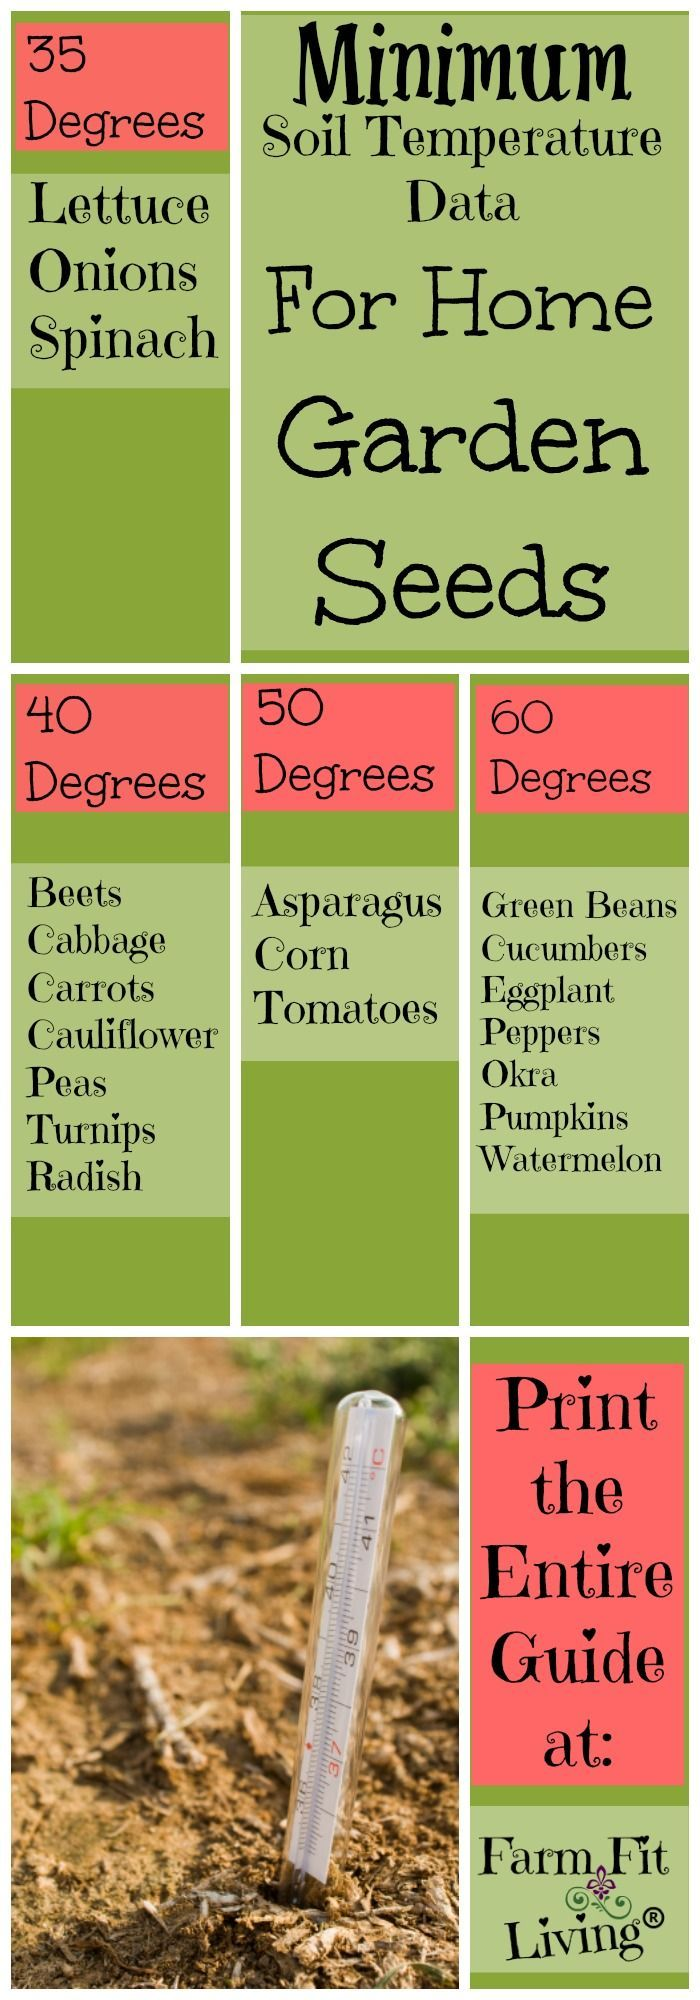 Best 25 planting seeds ideas on pinterest what to plant when check soil temperature data before planting seeds in the soil measure soil temperature planting nvjuhfo Choice Image